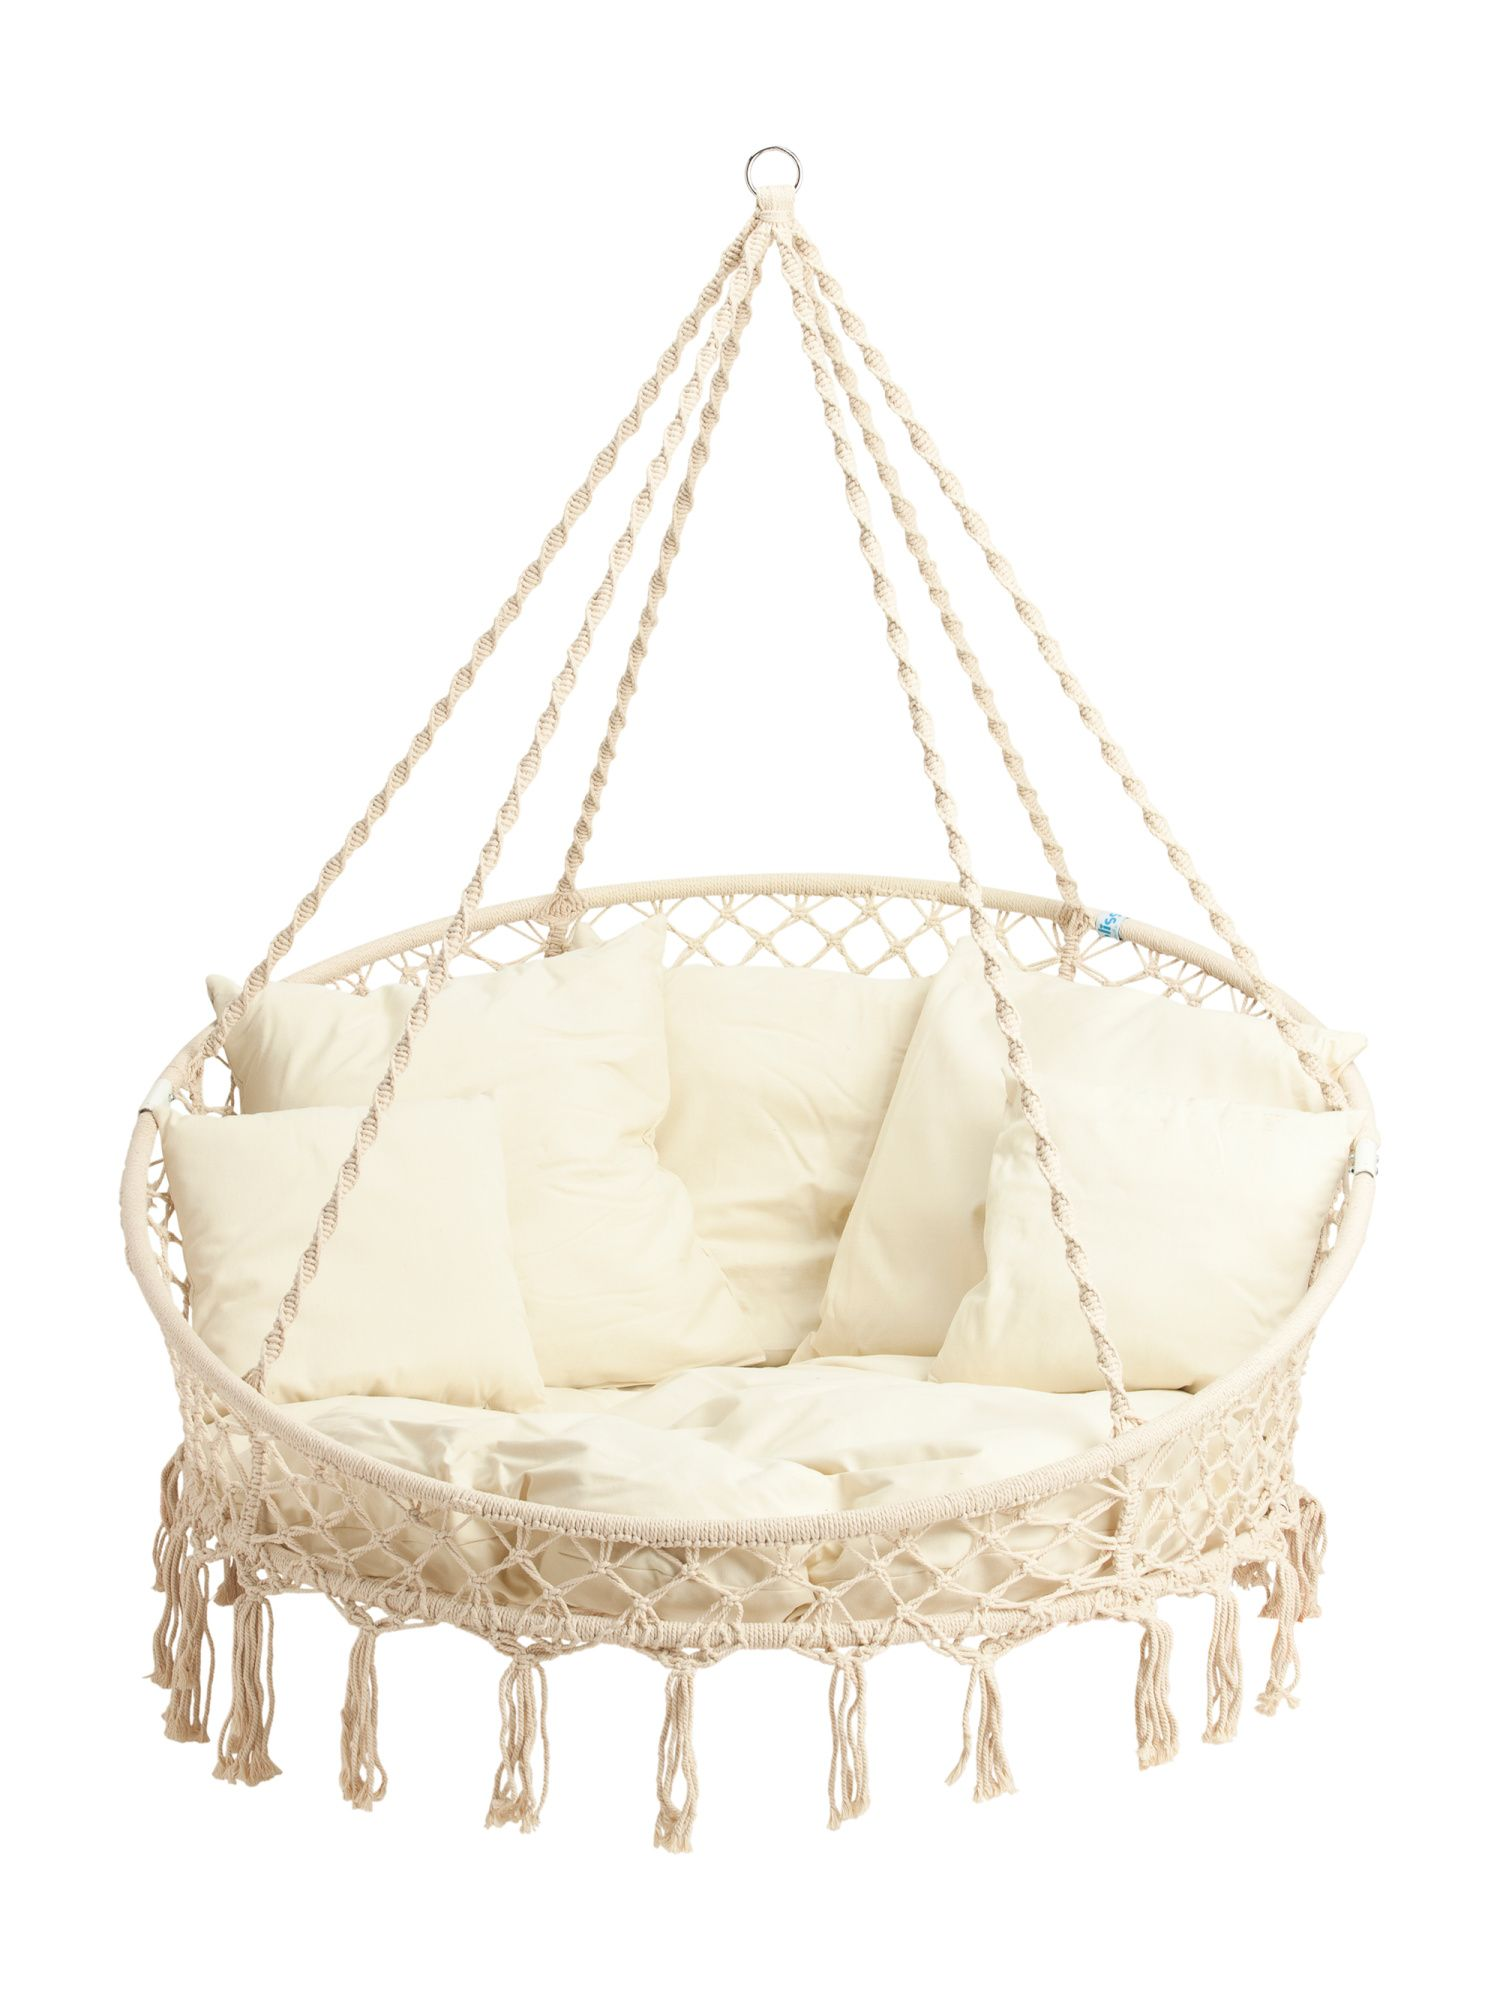 Groovy High Resolution Image Diy In 2019 Macrame Hanging Chair Pabps2019 Chair Design Images Pabps2019Com